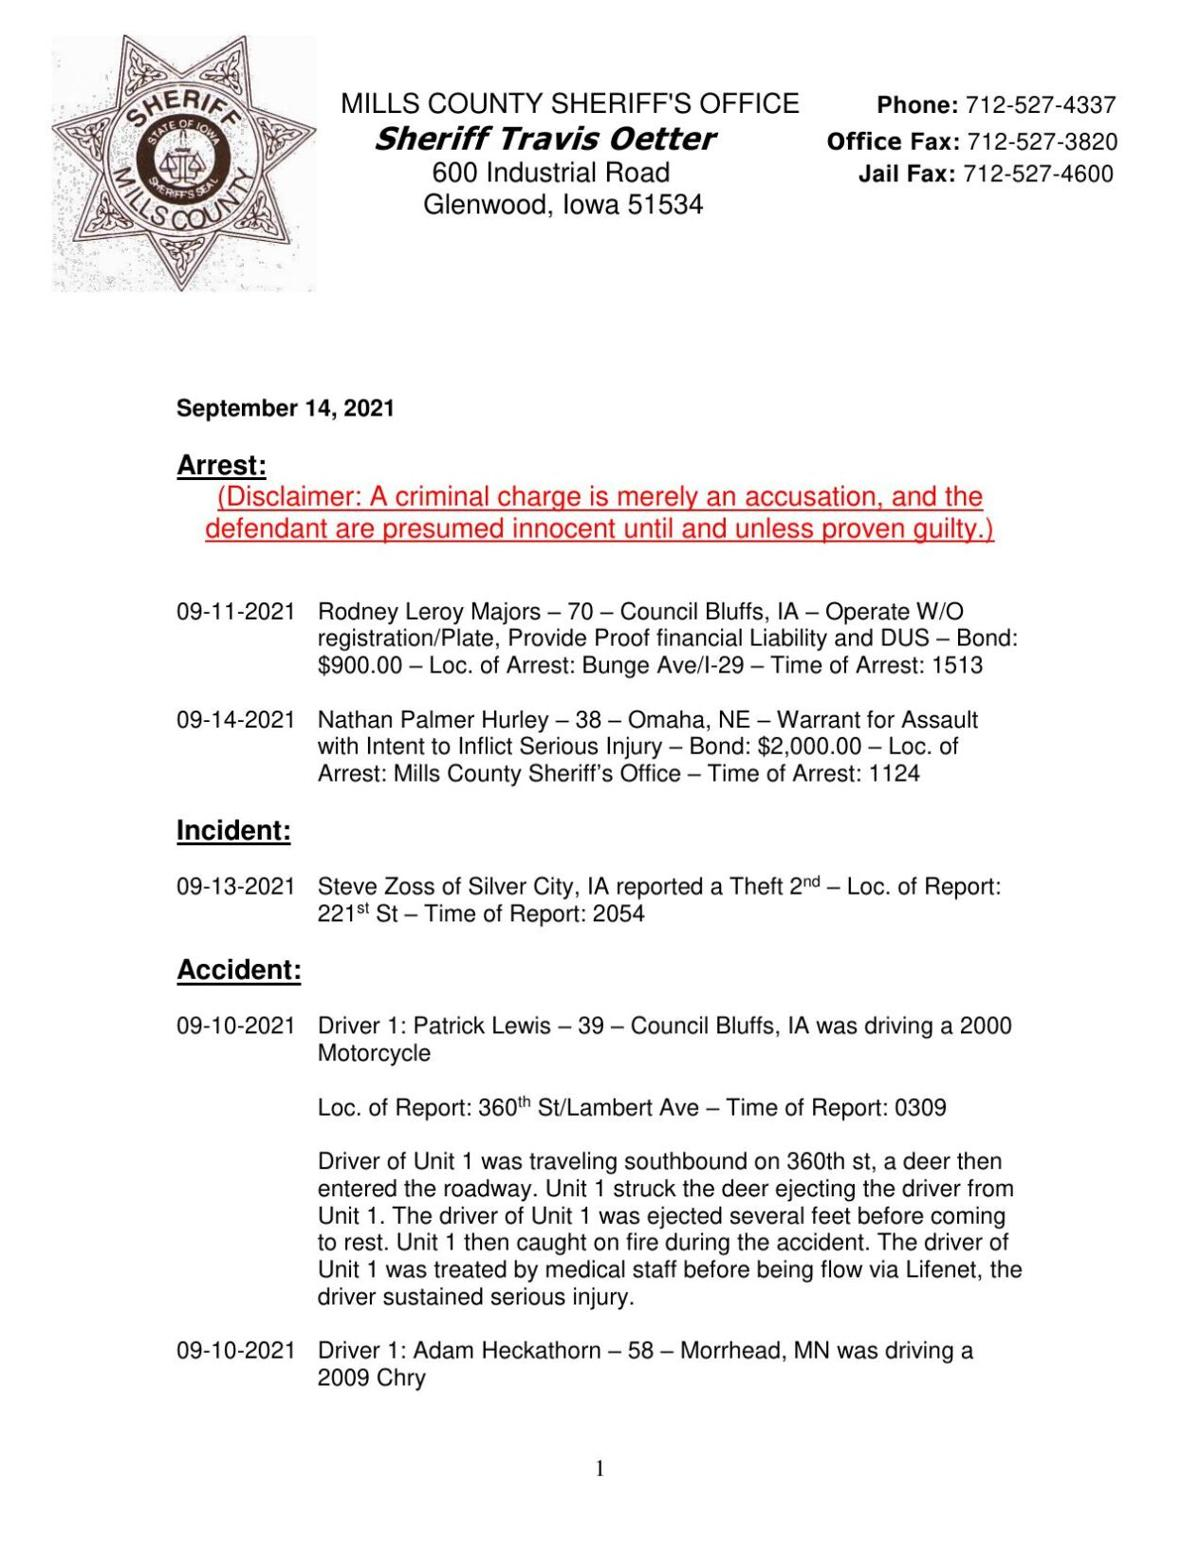 Mill's County Sheriff's Office Release